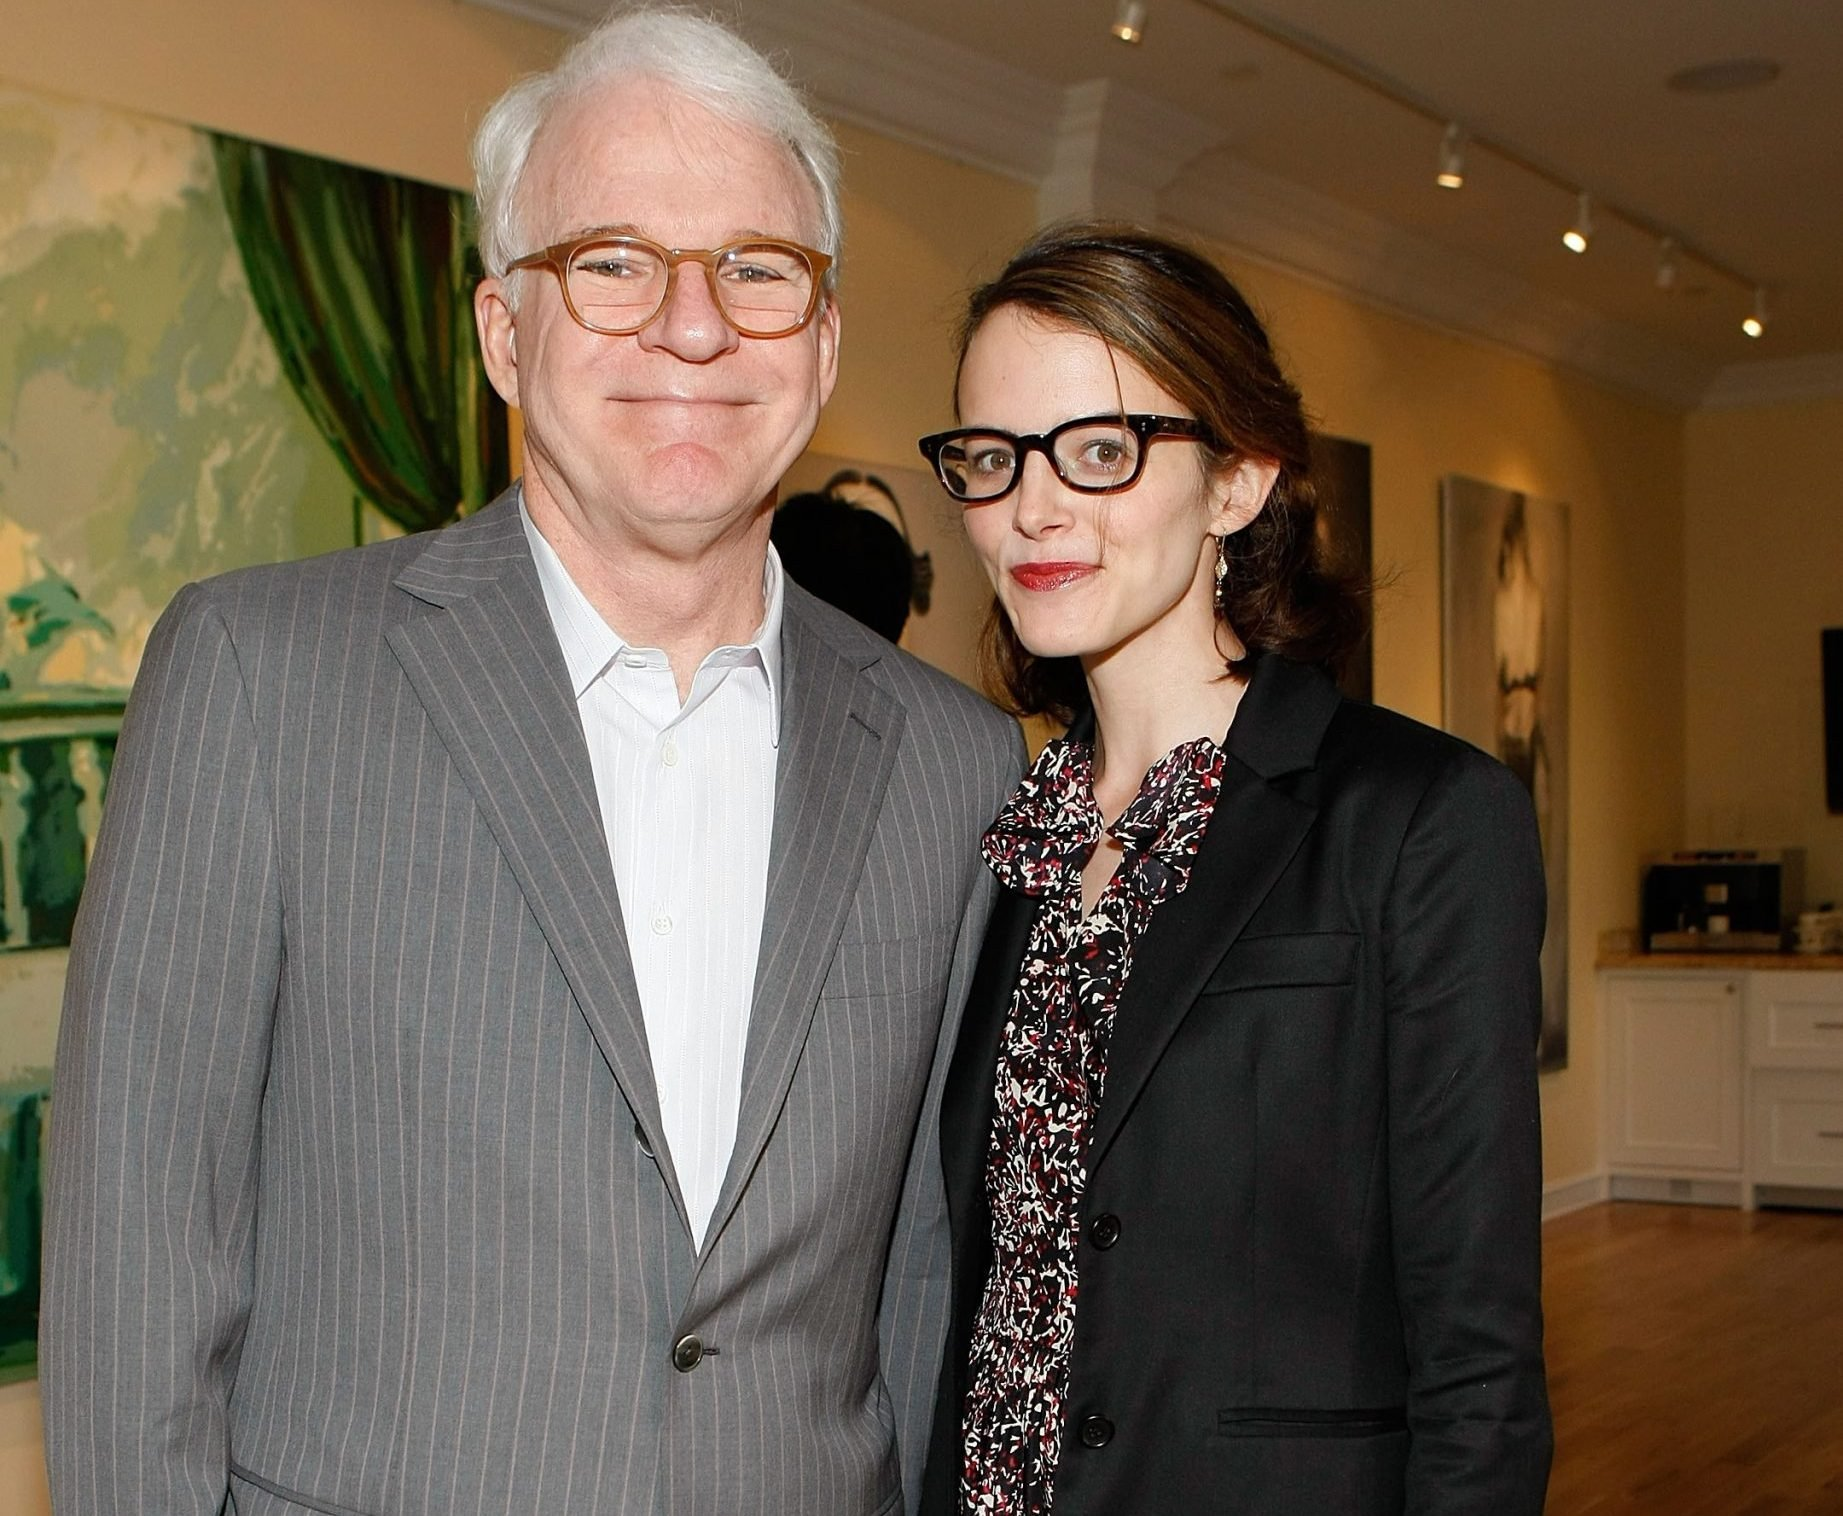 gettyimages 86471298 scaled e1628860459775 20 Things You Didn't Know About Steve Martin